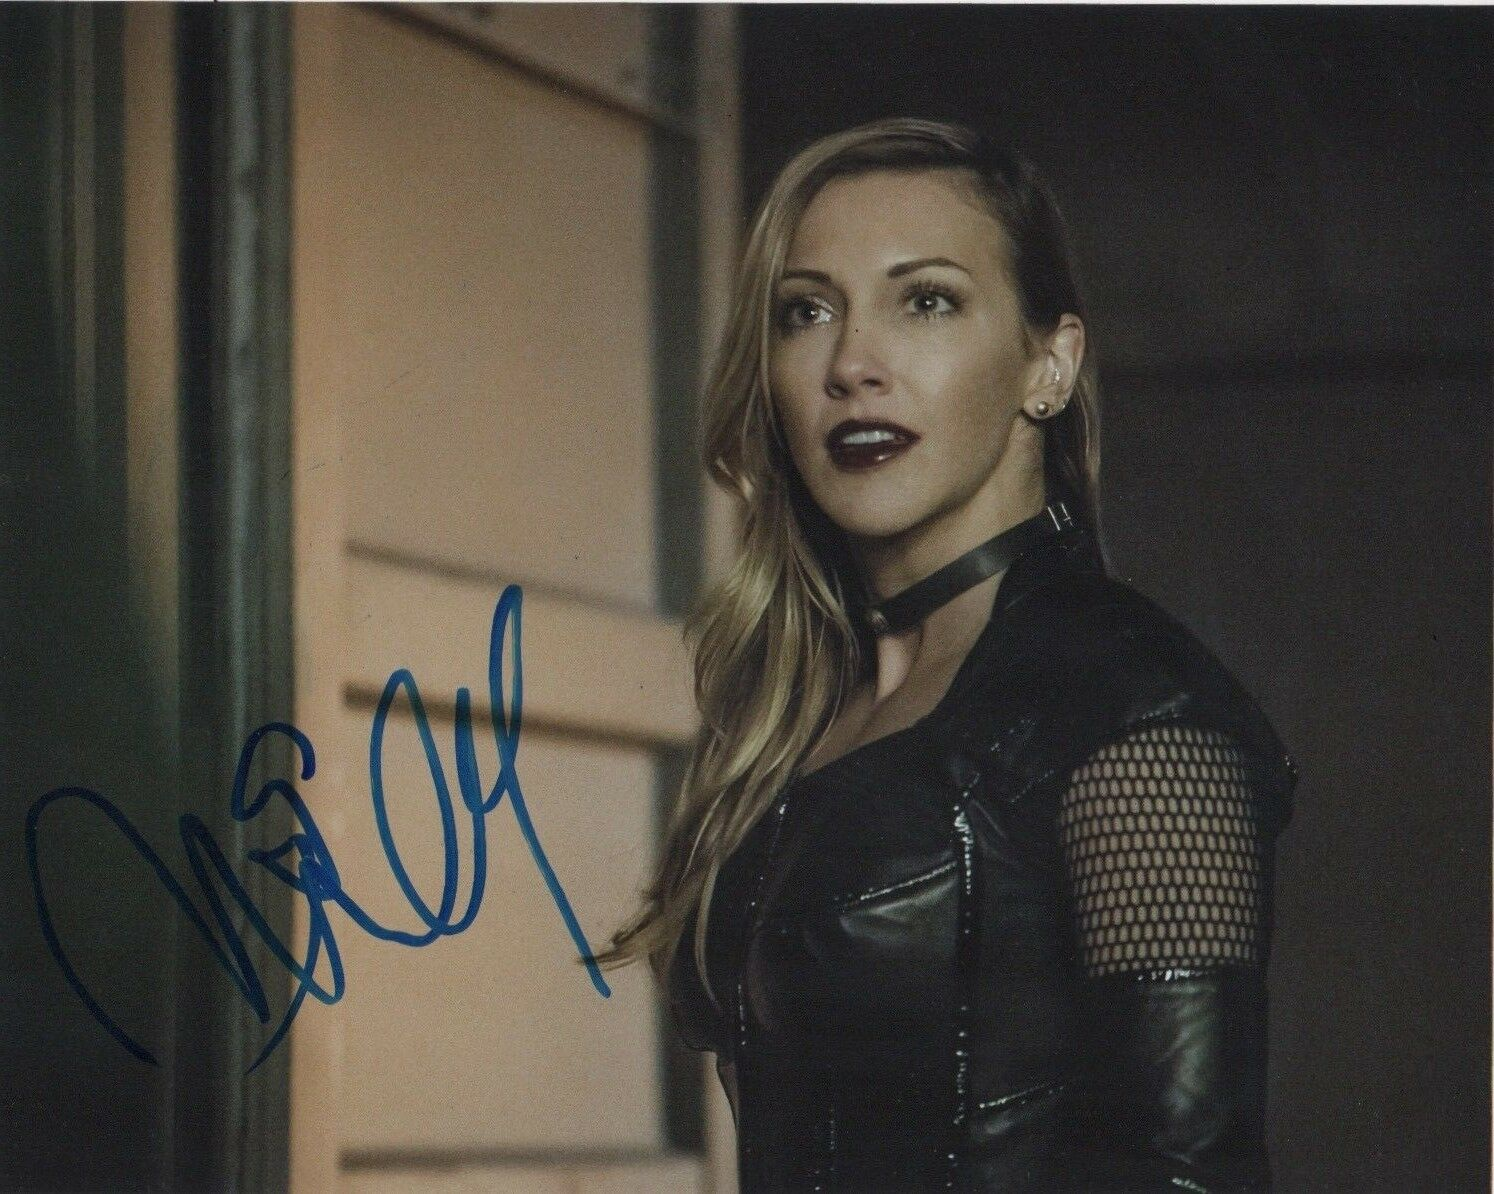 Katie Cassidy Arrow Signed Autograph 8x10 Photo - Outlaw Hobbies Authentic Autographs